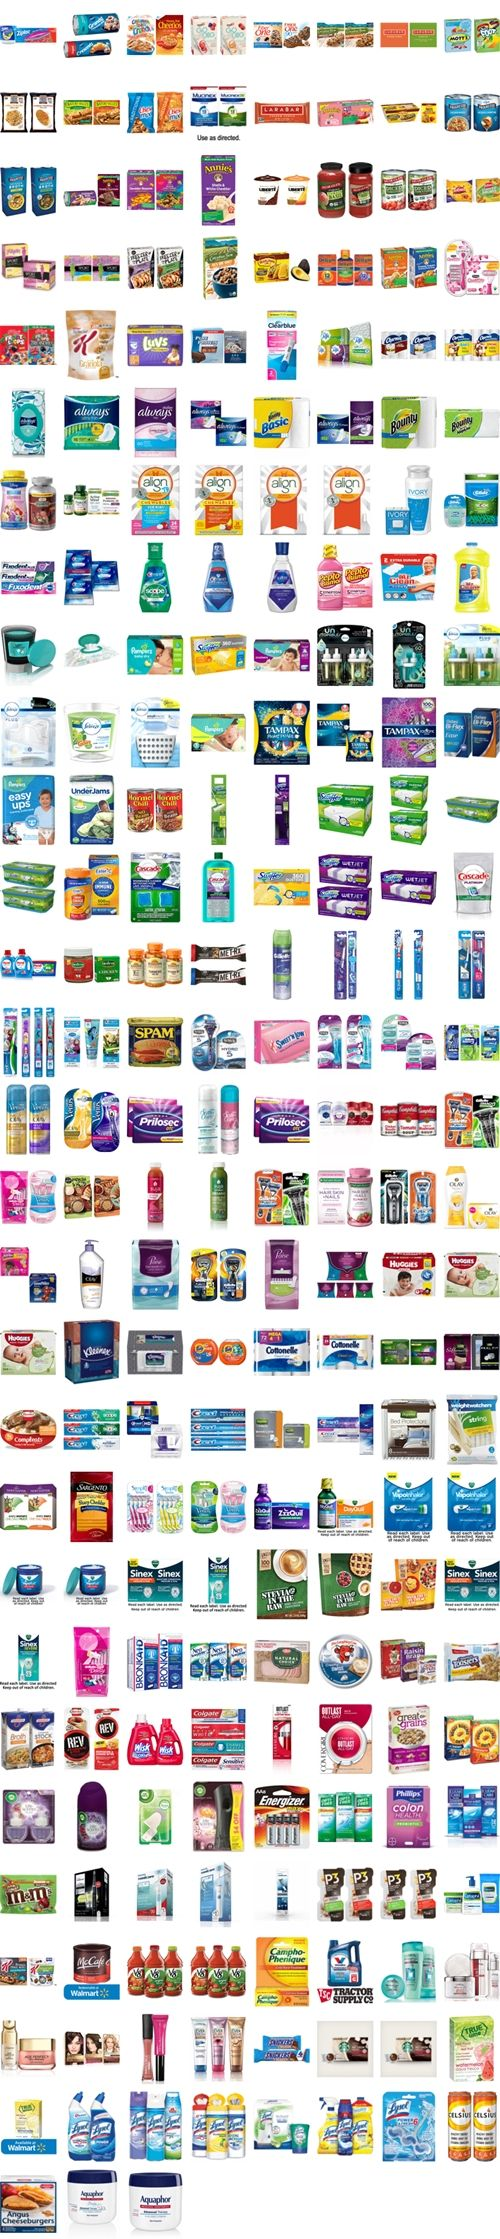 over 200 new printable coupons for bounty, charmin, cottonelle, covergirl, crest, gillette, huggies, l'oreal, m&m's, pampers, playtex, progresso, schick, snickers, ziploc, & more!  direct links:  http://www.iheartcoupons.net/2017/01/new-printable-coupons-1230-010117.html  #coupons #couponing #couponcommunity